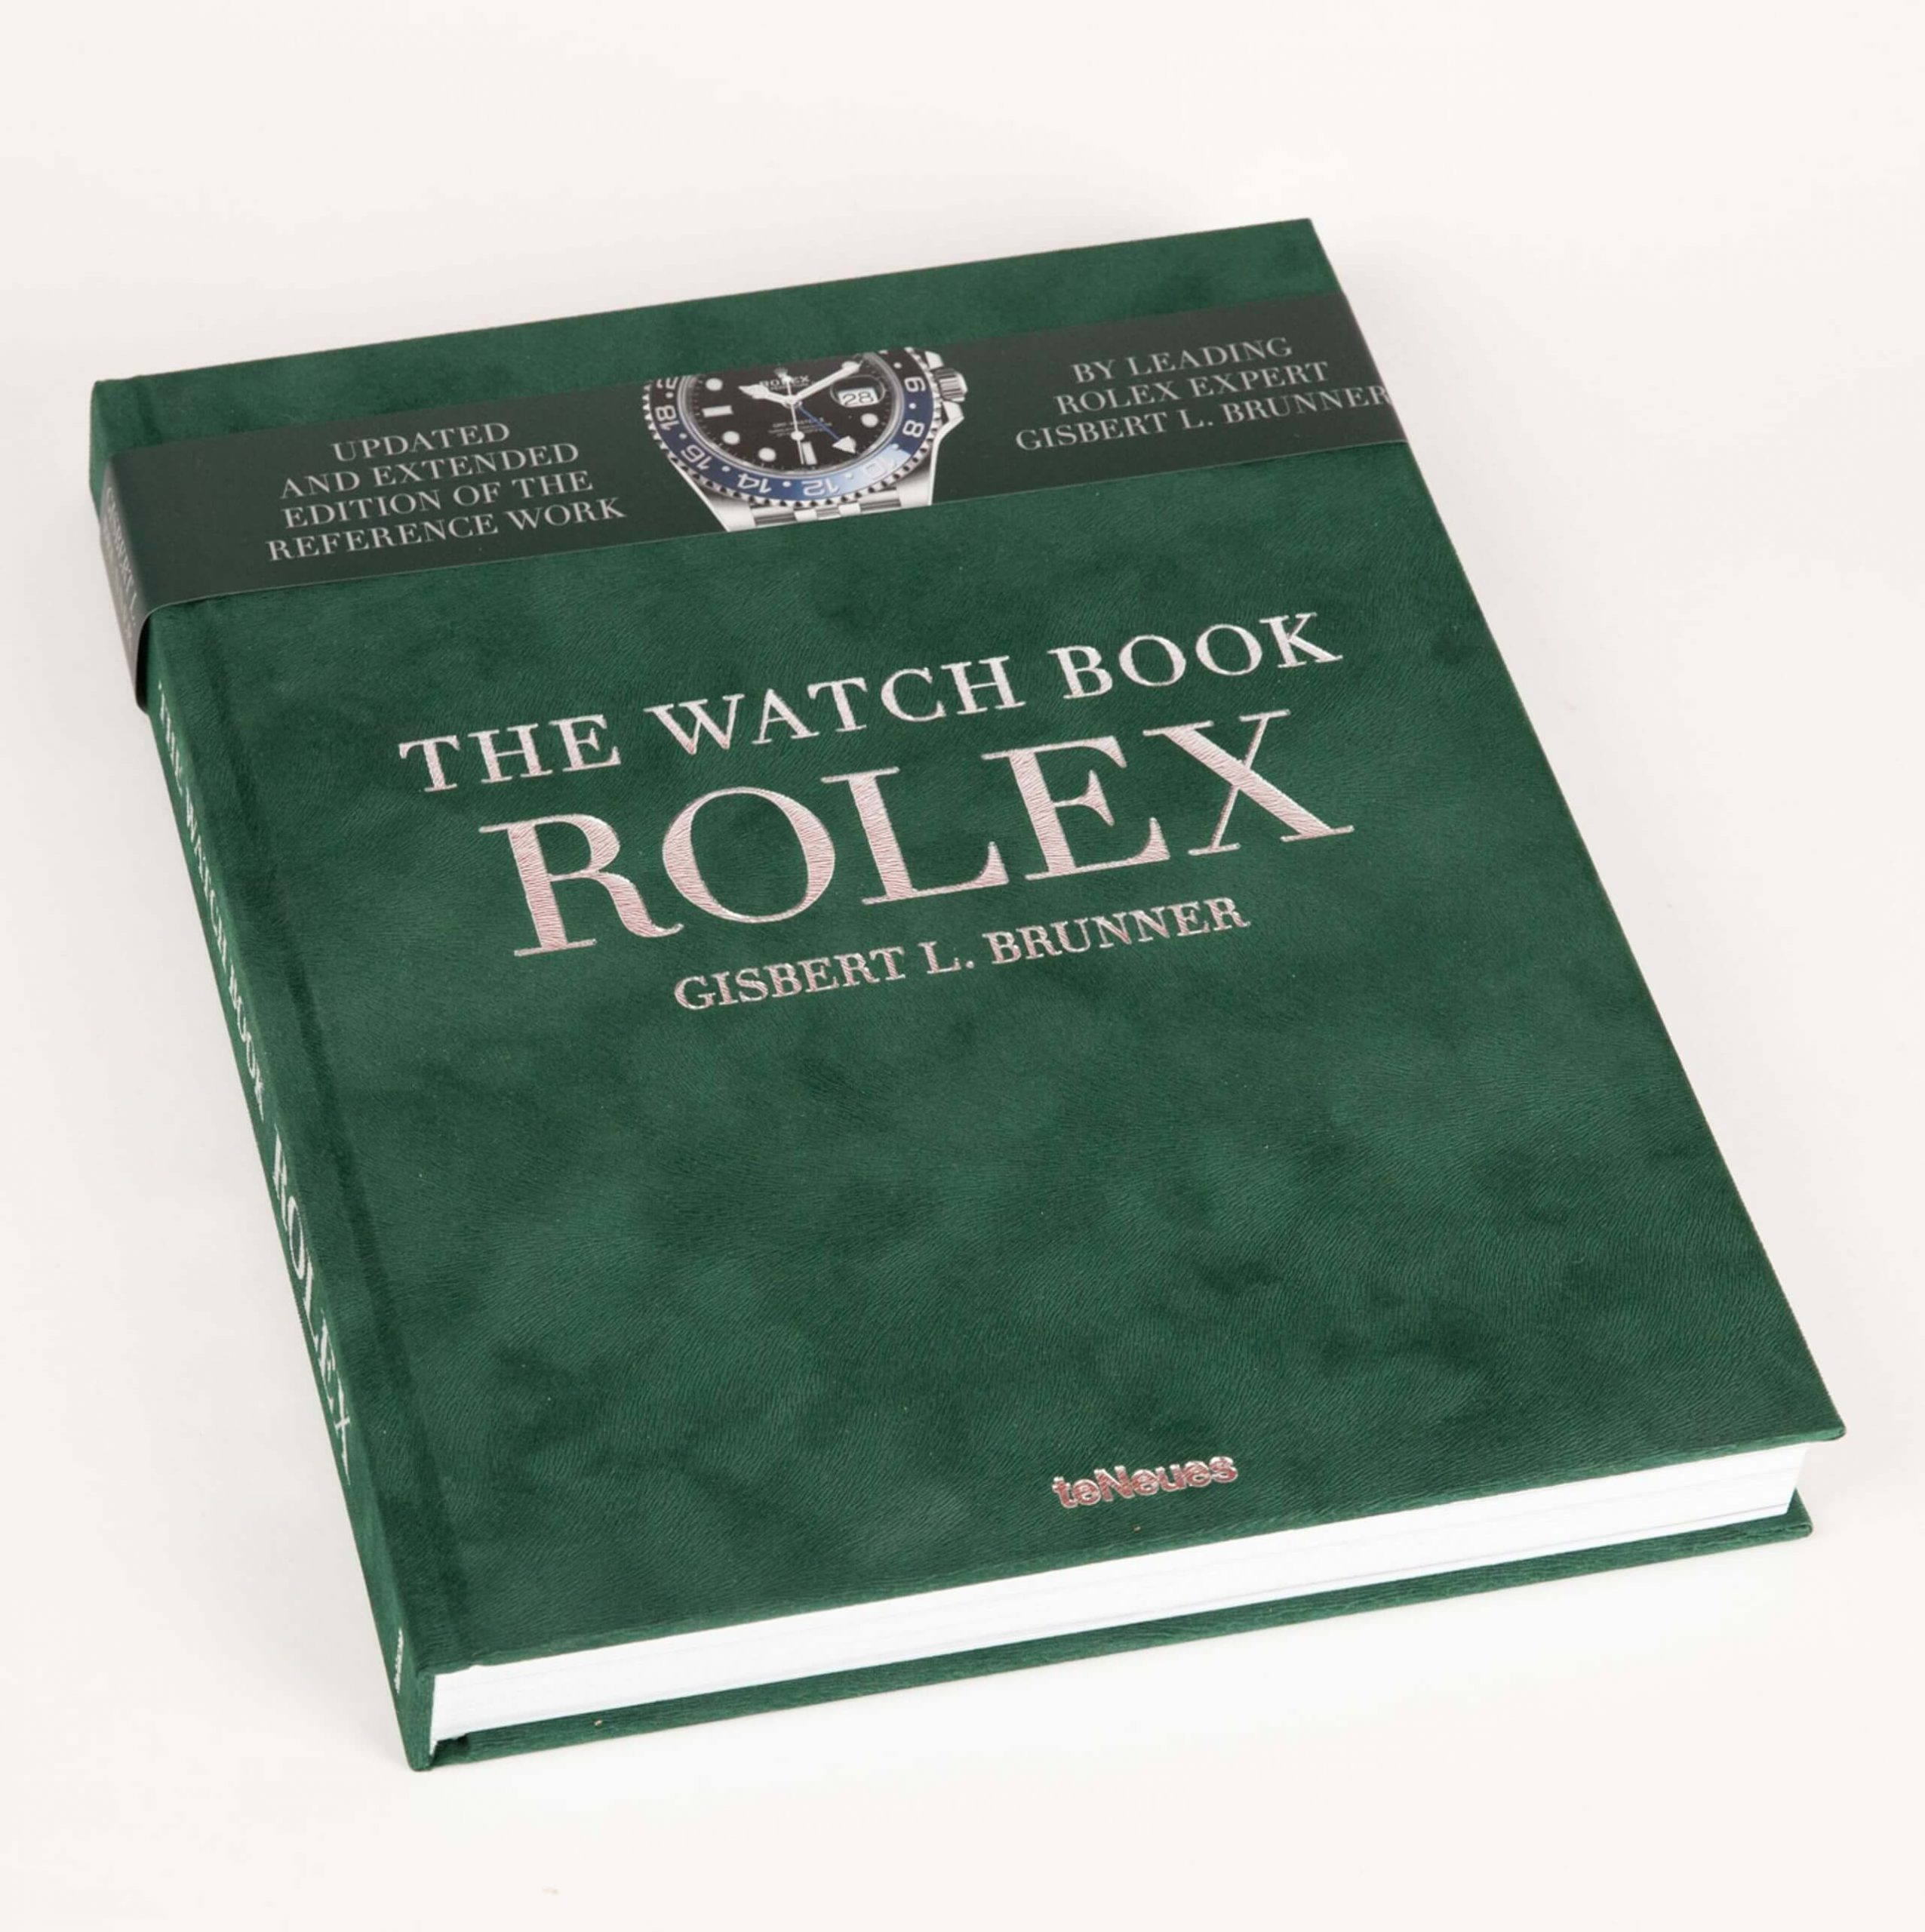 The Watch Book Rolex